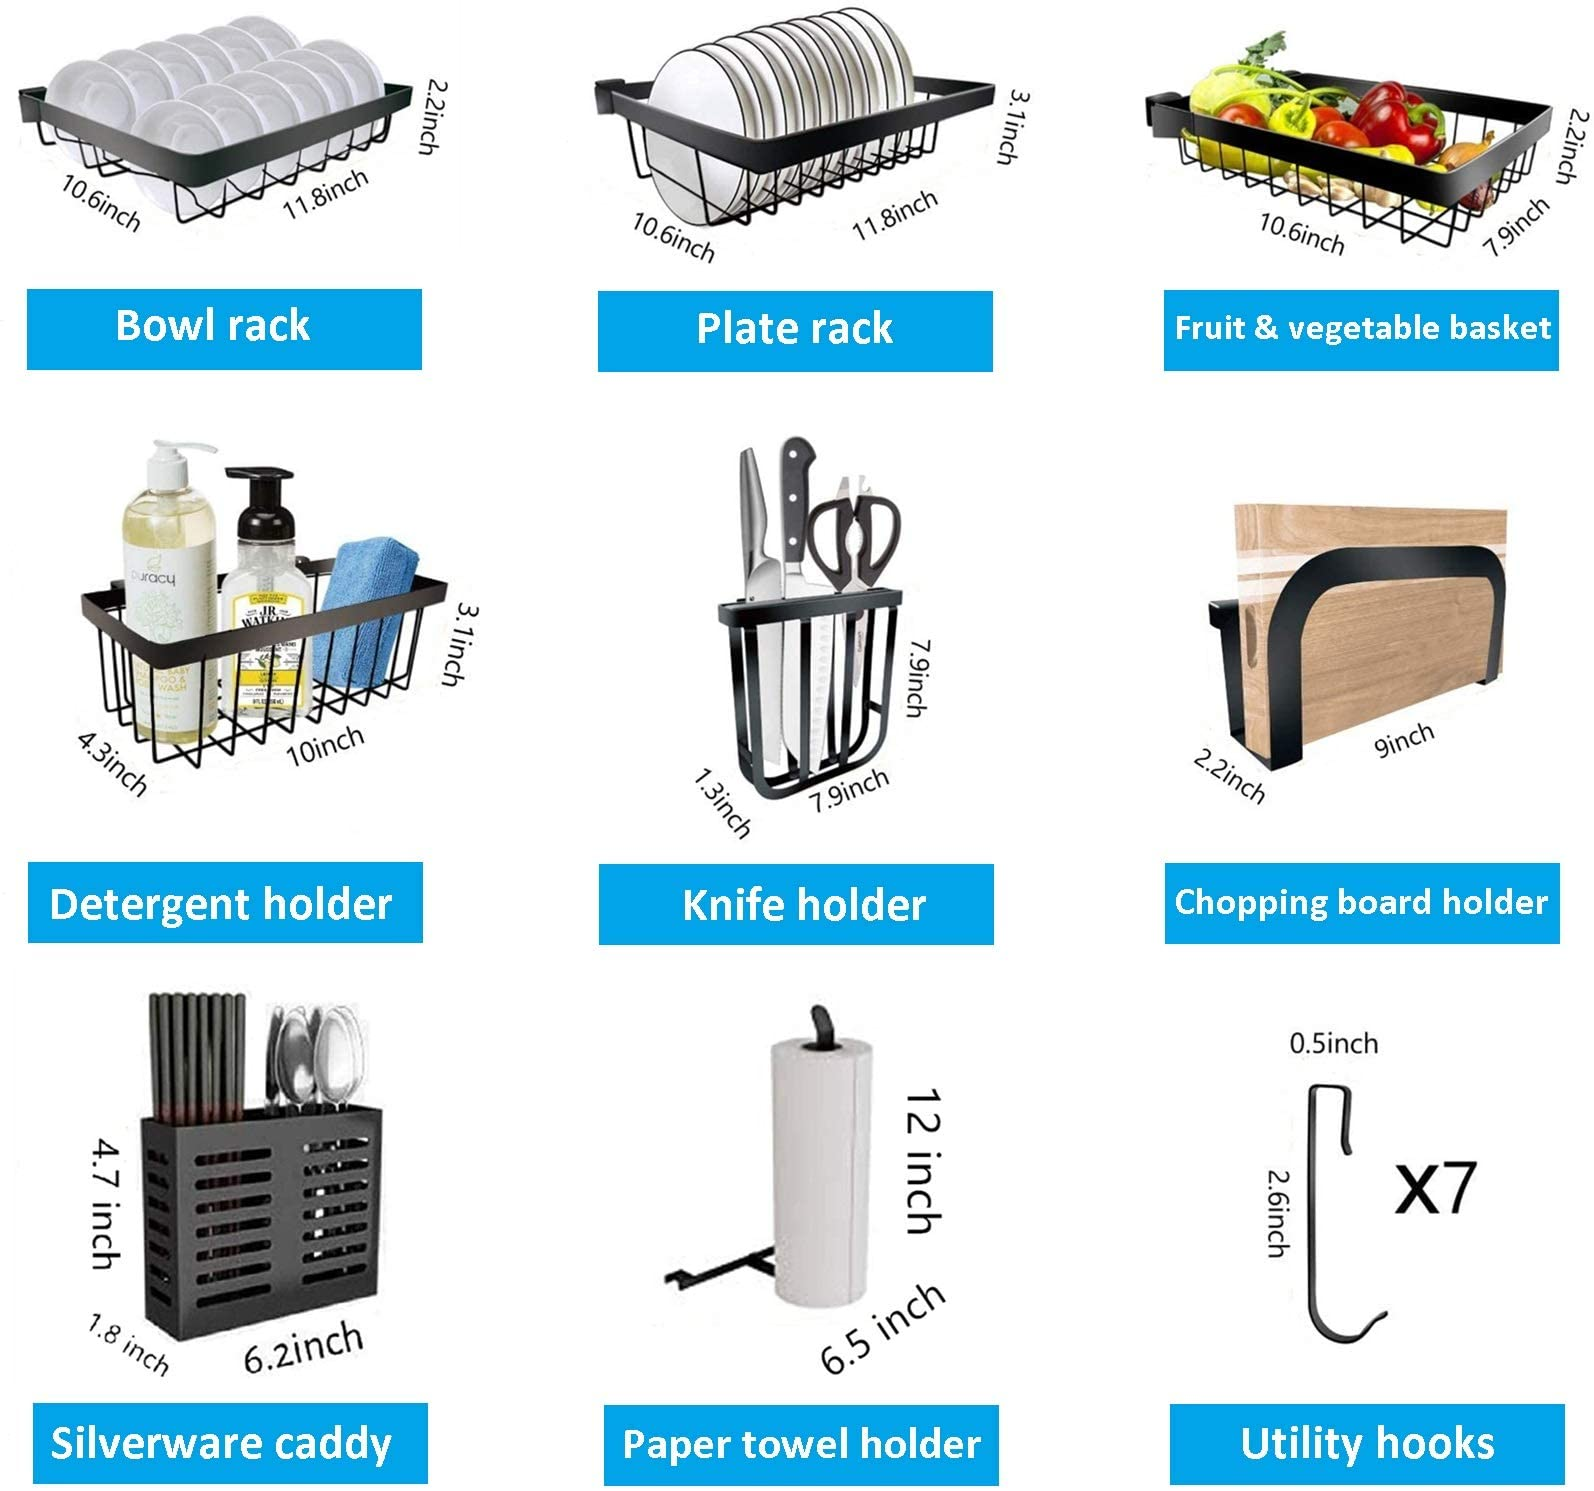 home-key-over-the-sink-dish-drying-rack-baskets-caddies